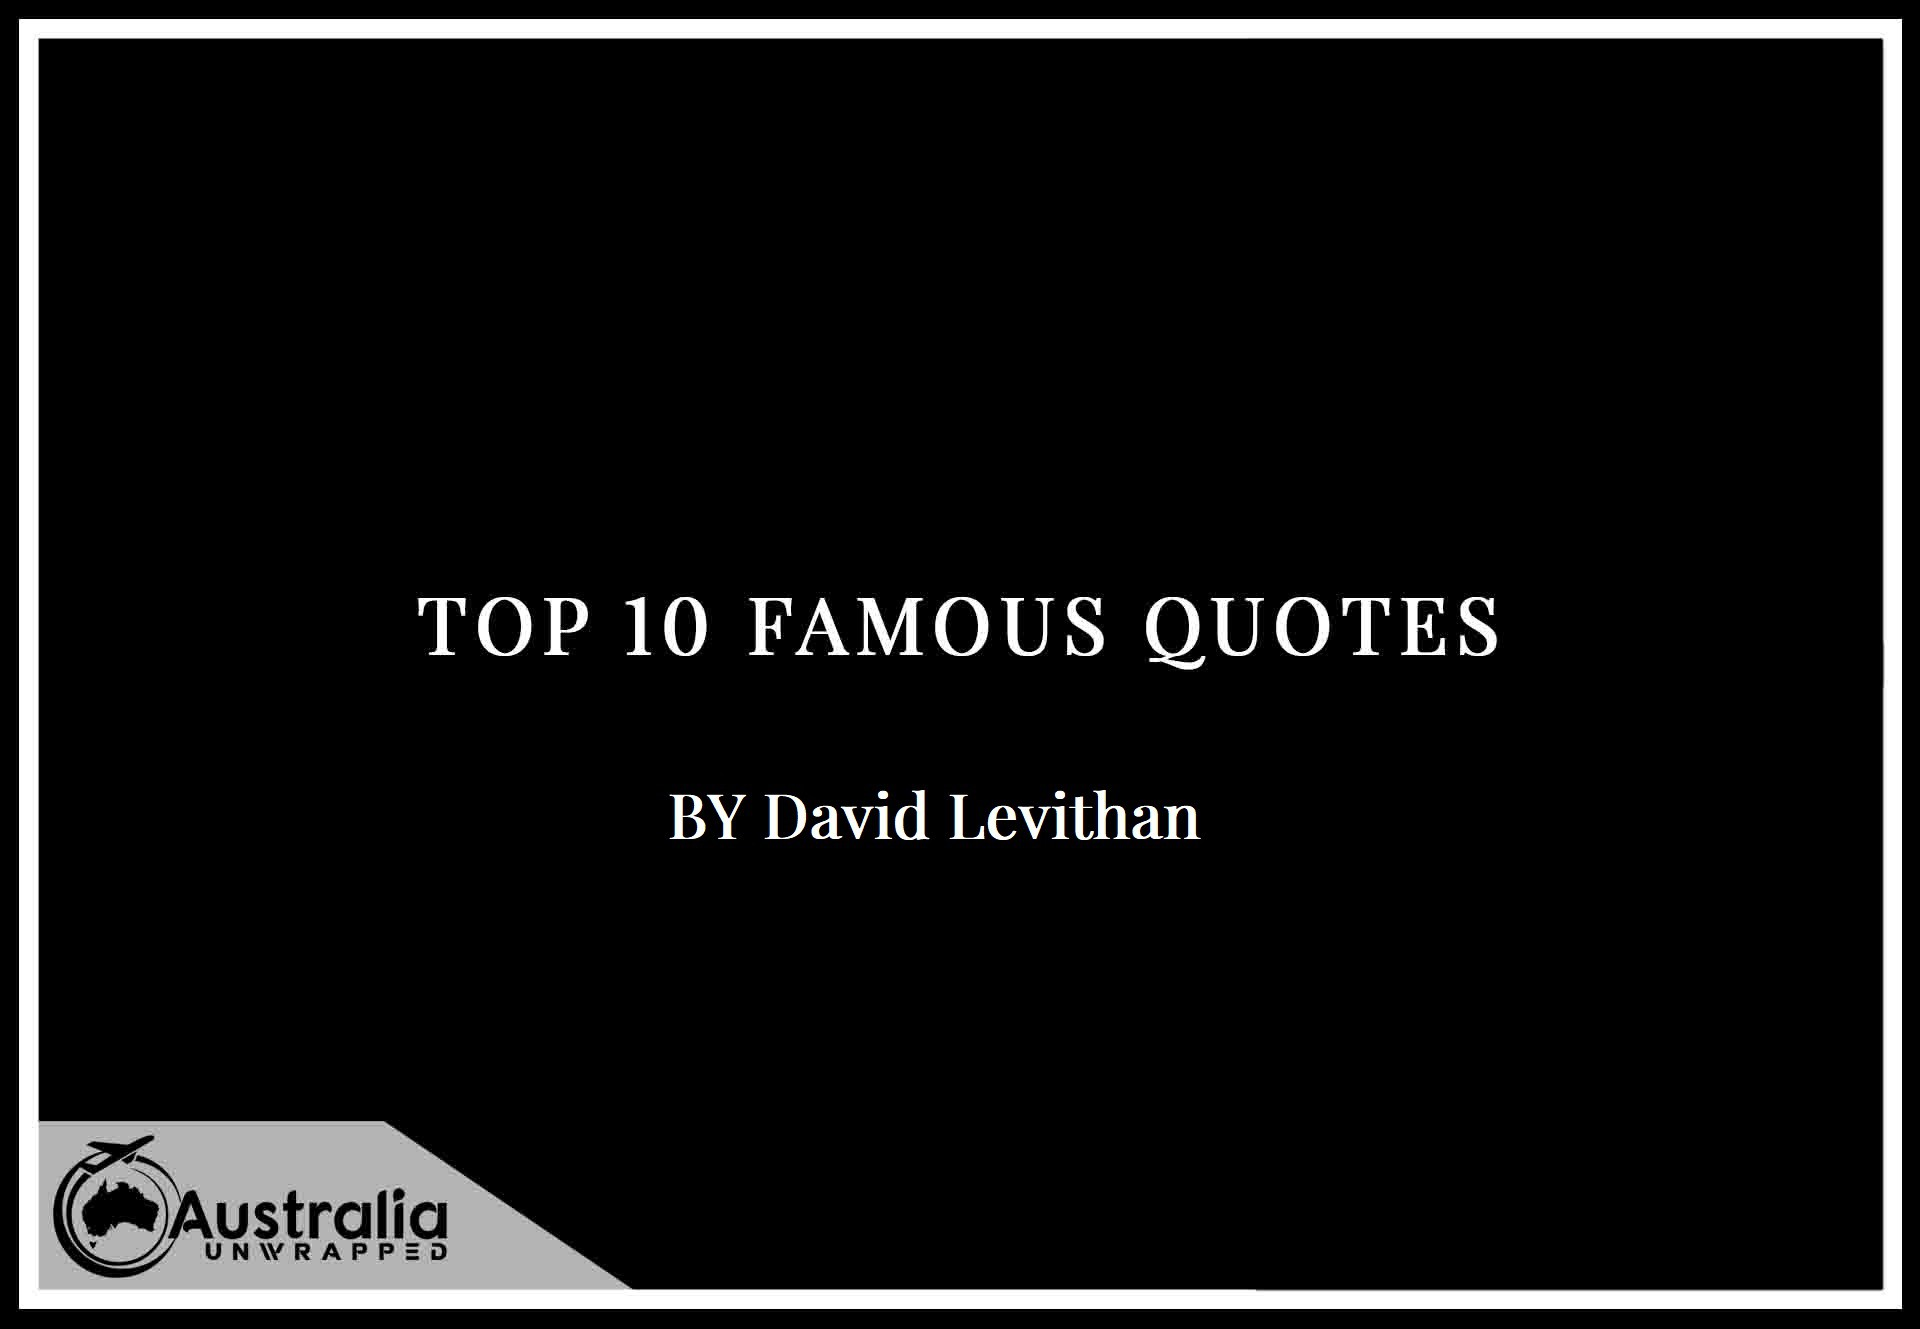 Top 10 Famous Quotes by Author David Levithan